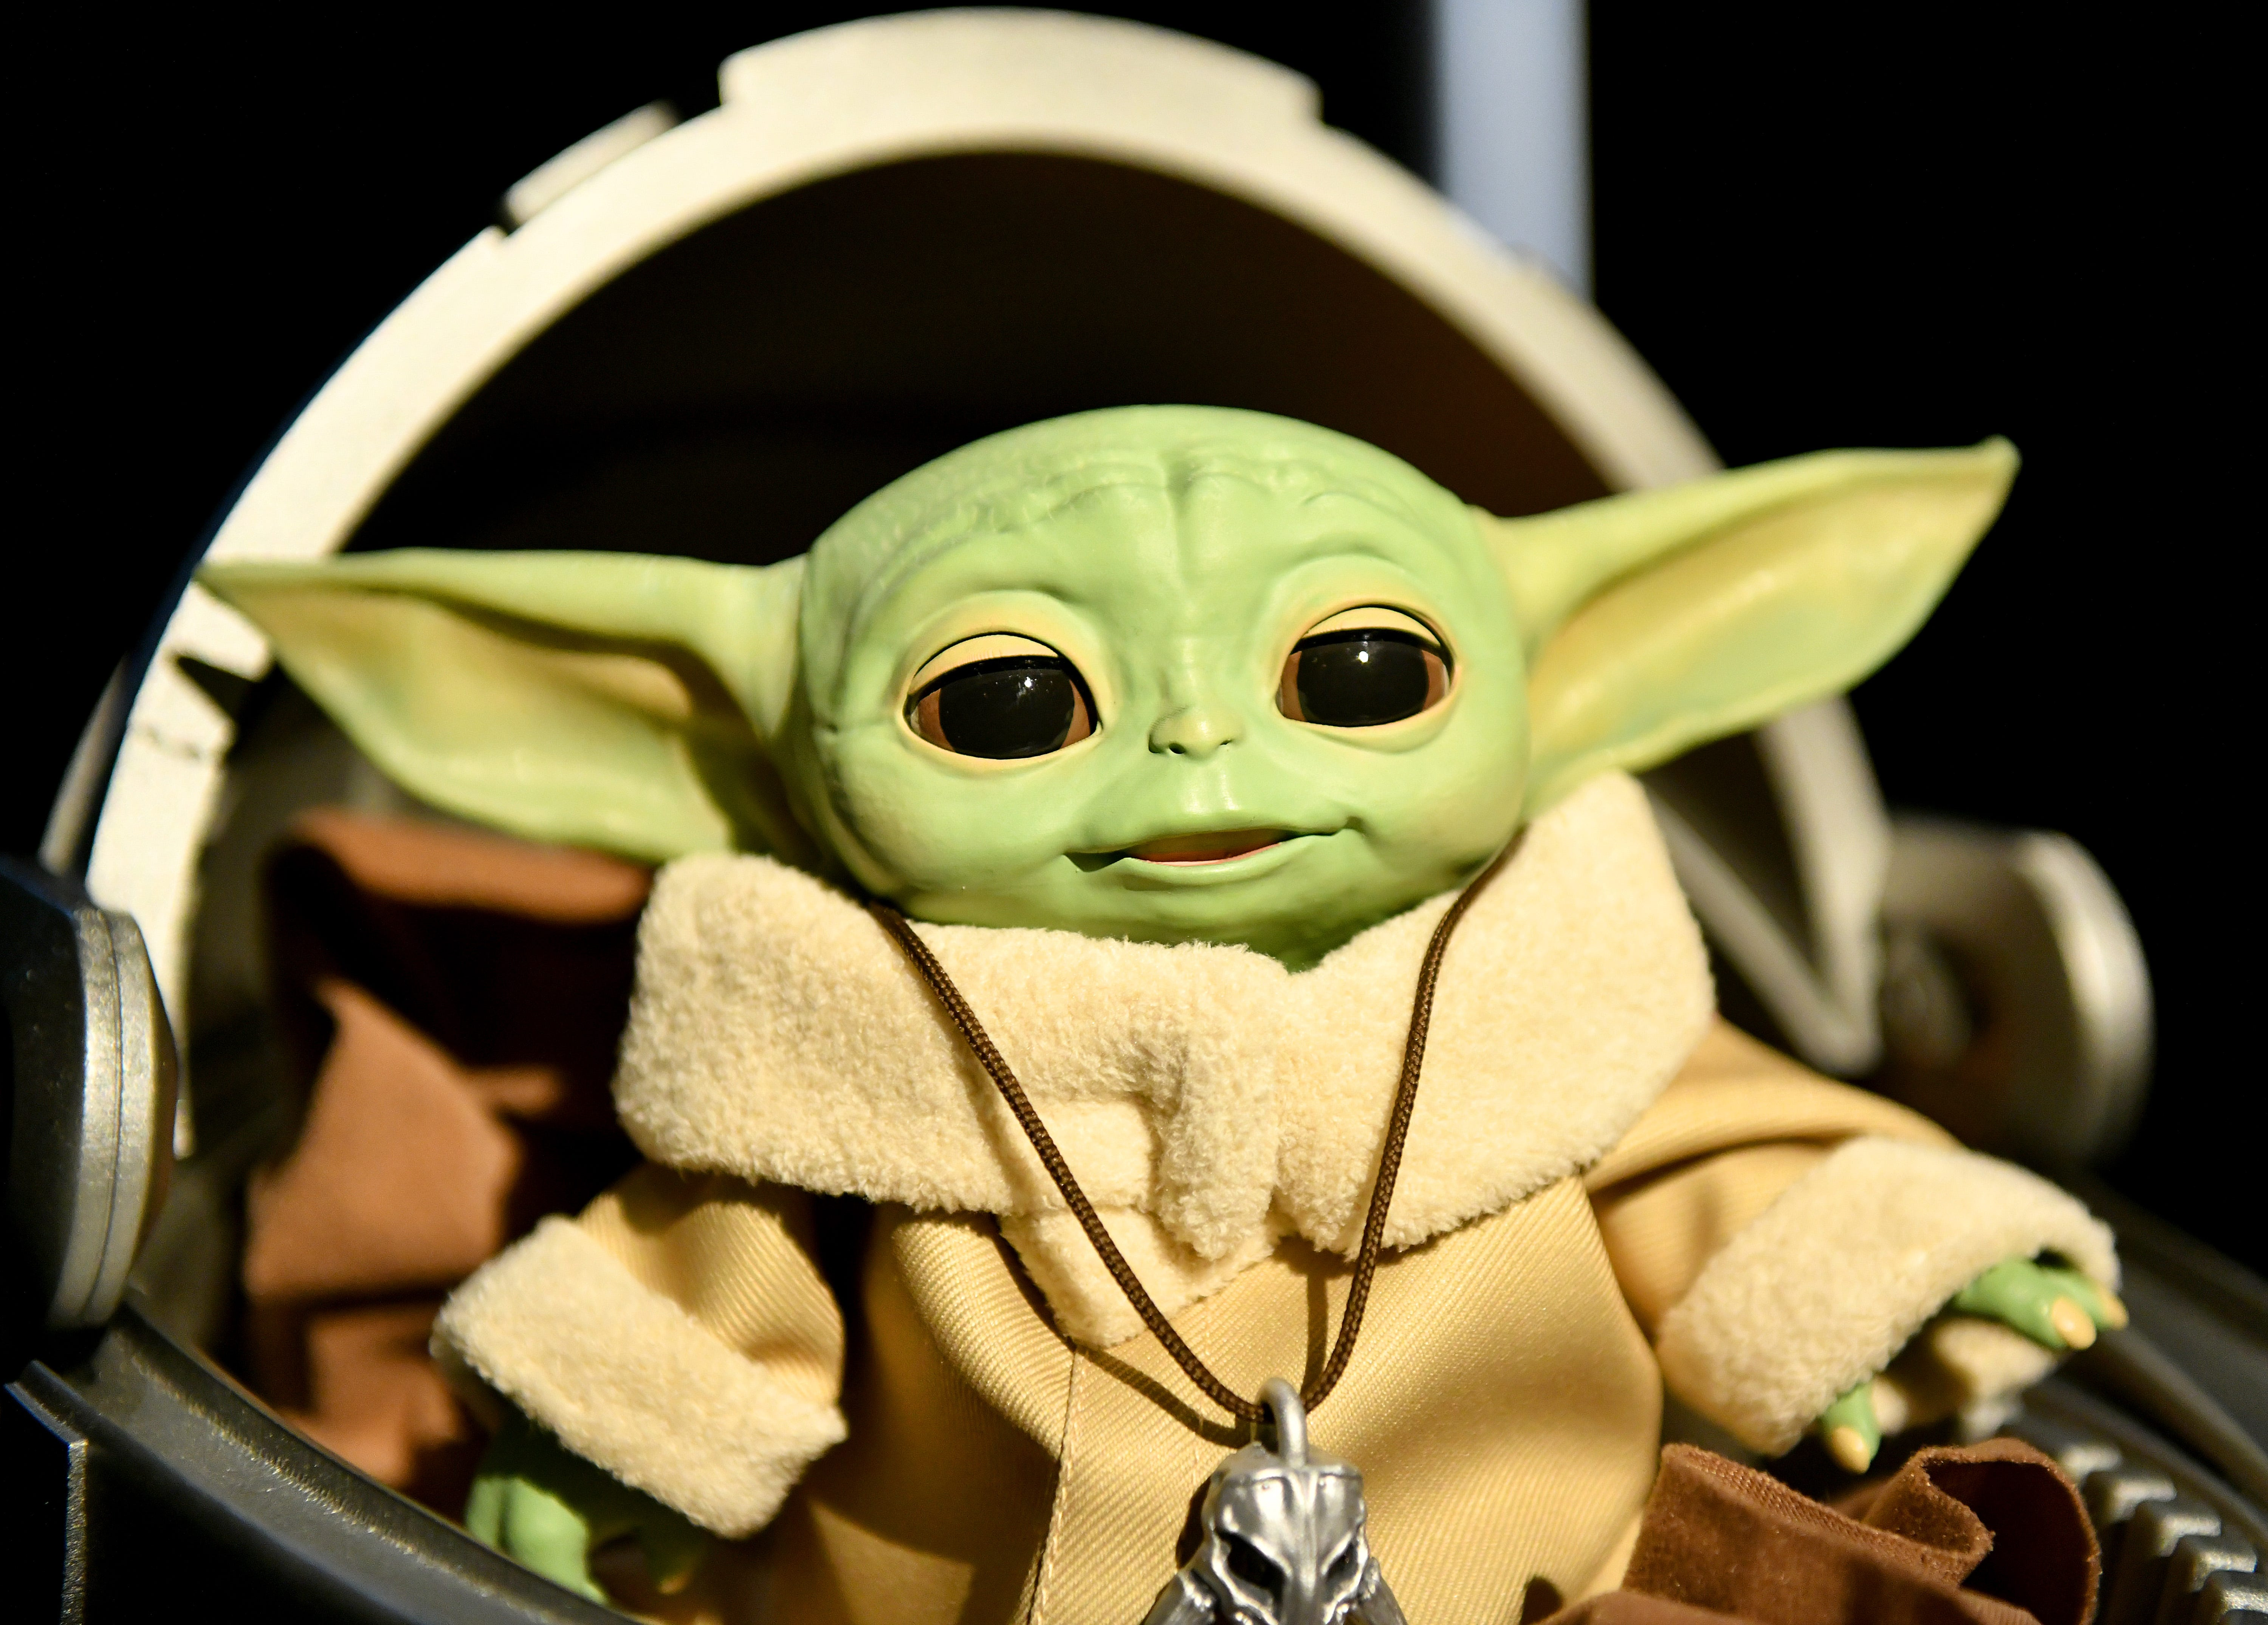 Disney Finally Unveils Baby Yoda Toys Months After His Tv Debut